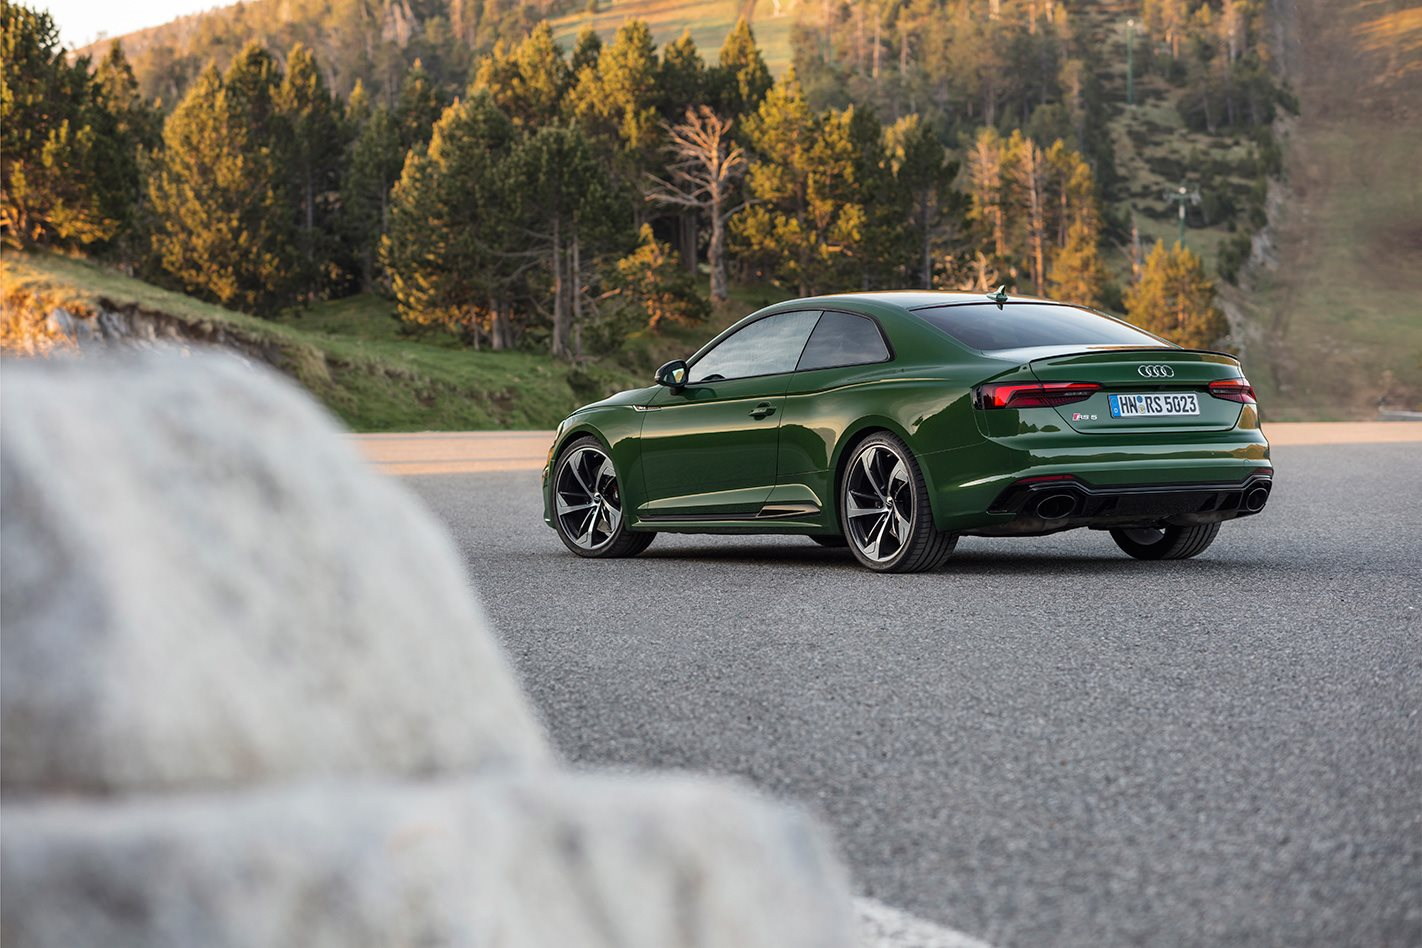 2018 Audi RS5 Coupe rear